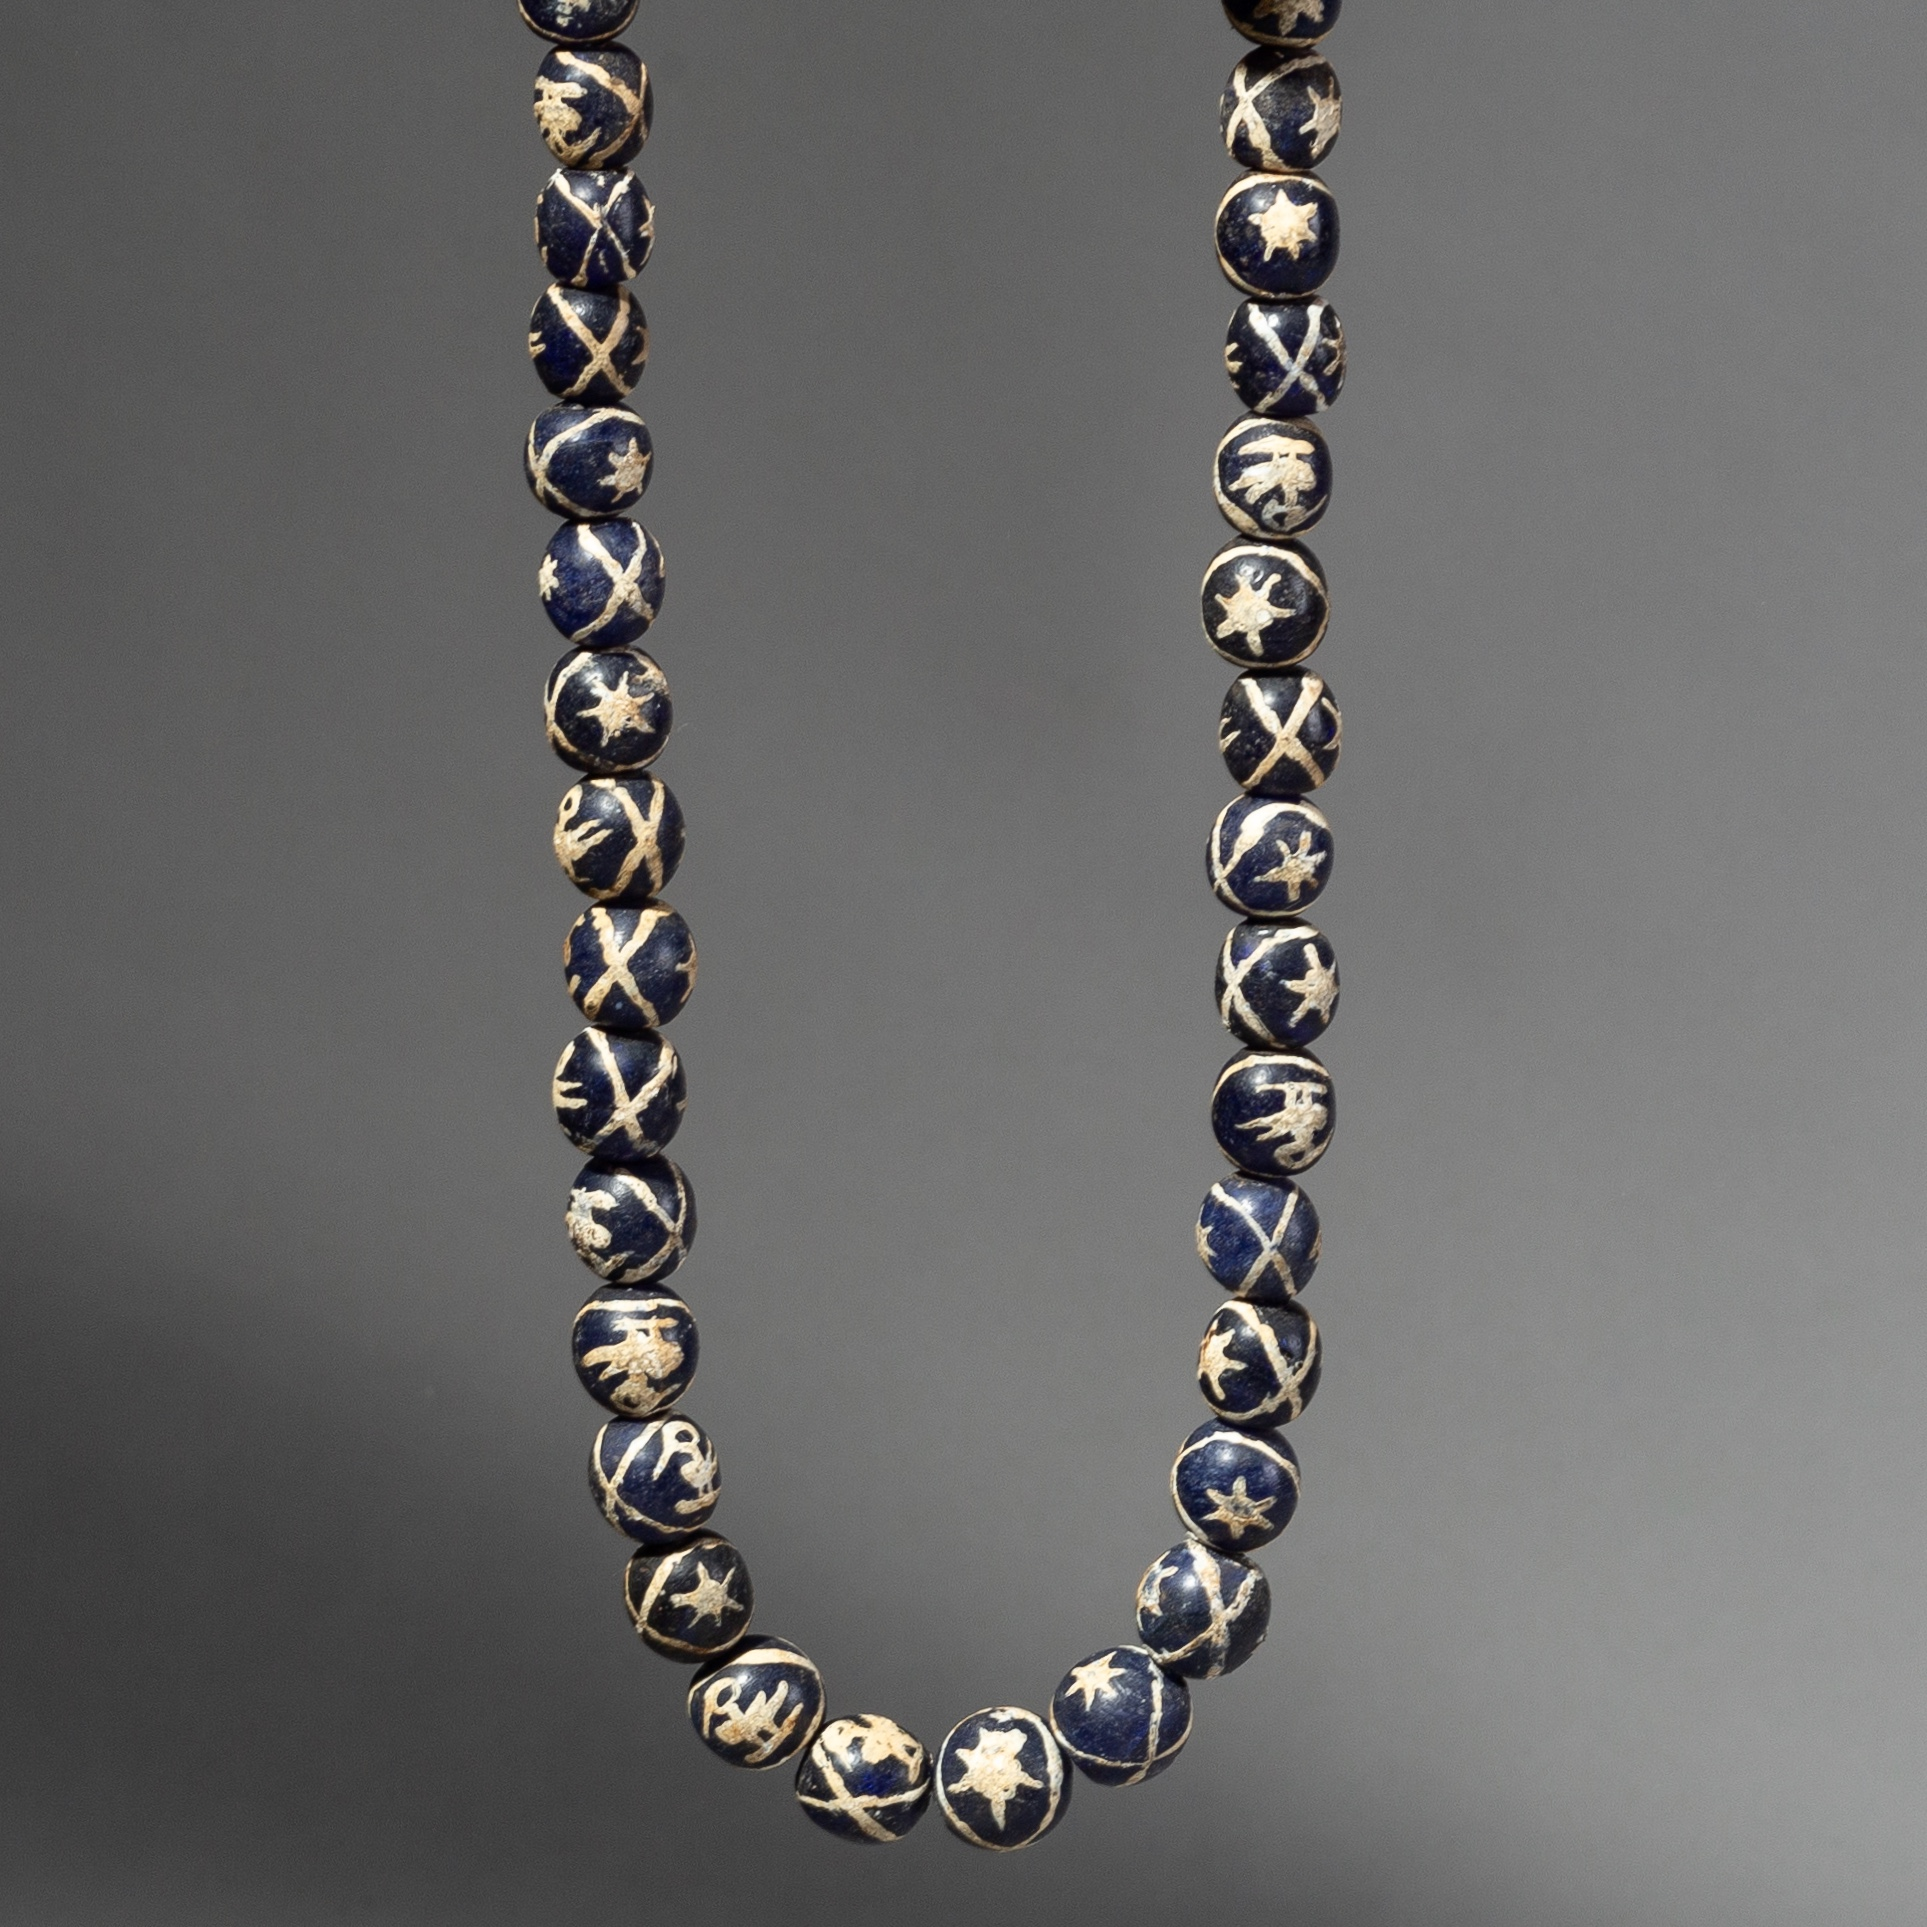 A MONOCHROMATIC BLUE GLASS BEAD NECKLACE FROM JAVA ( No 2147 )